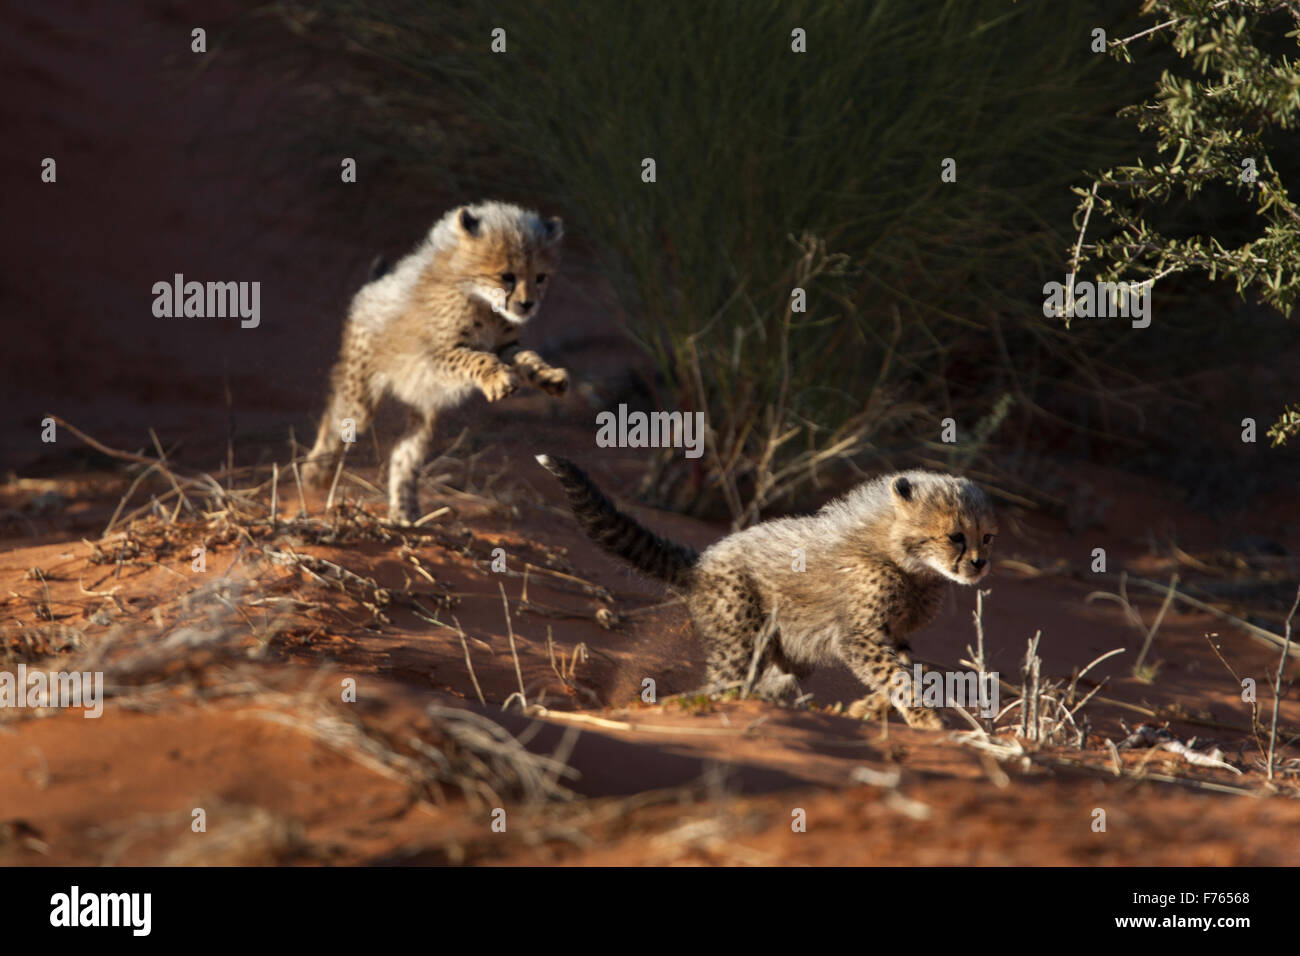 Cheetah cubs playing in the sand dunes of the Kgalagadi Transfrontier Park - Stock Image